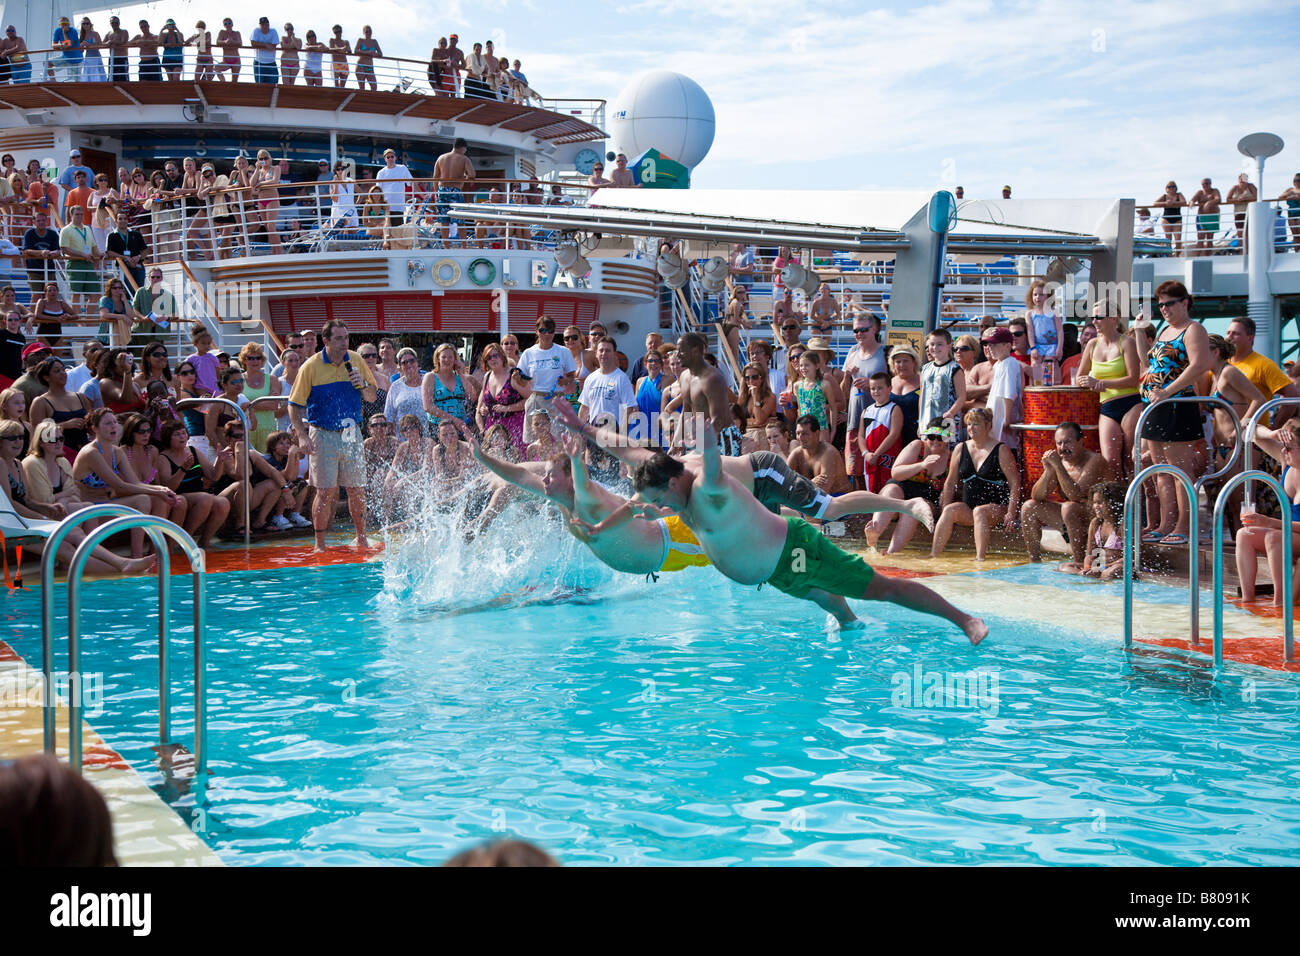 Belly flop contest on the deck of Royal Caribbean Navigator of the Seas cruise ship - Stock Image